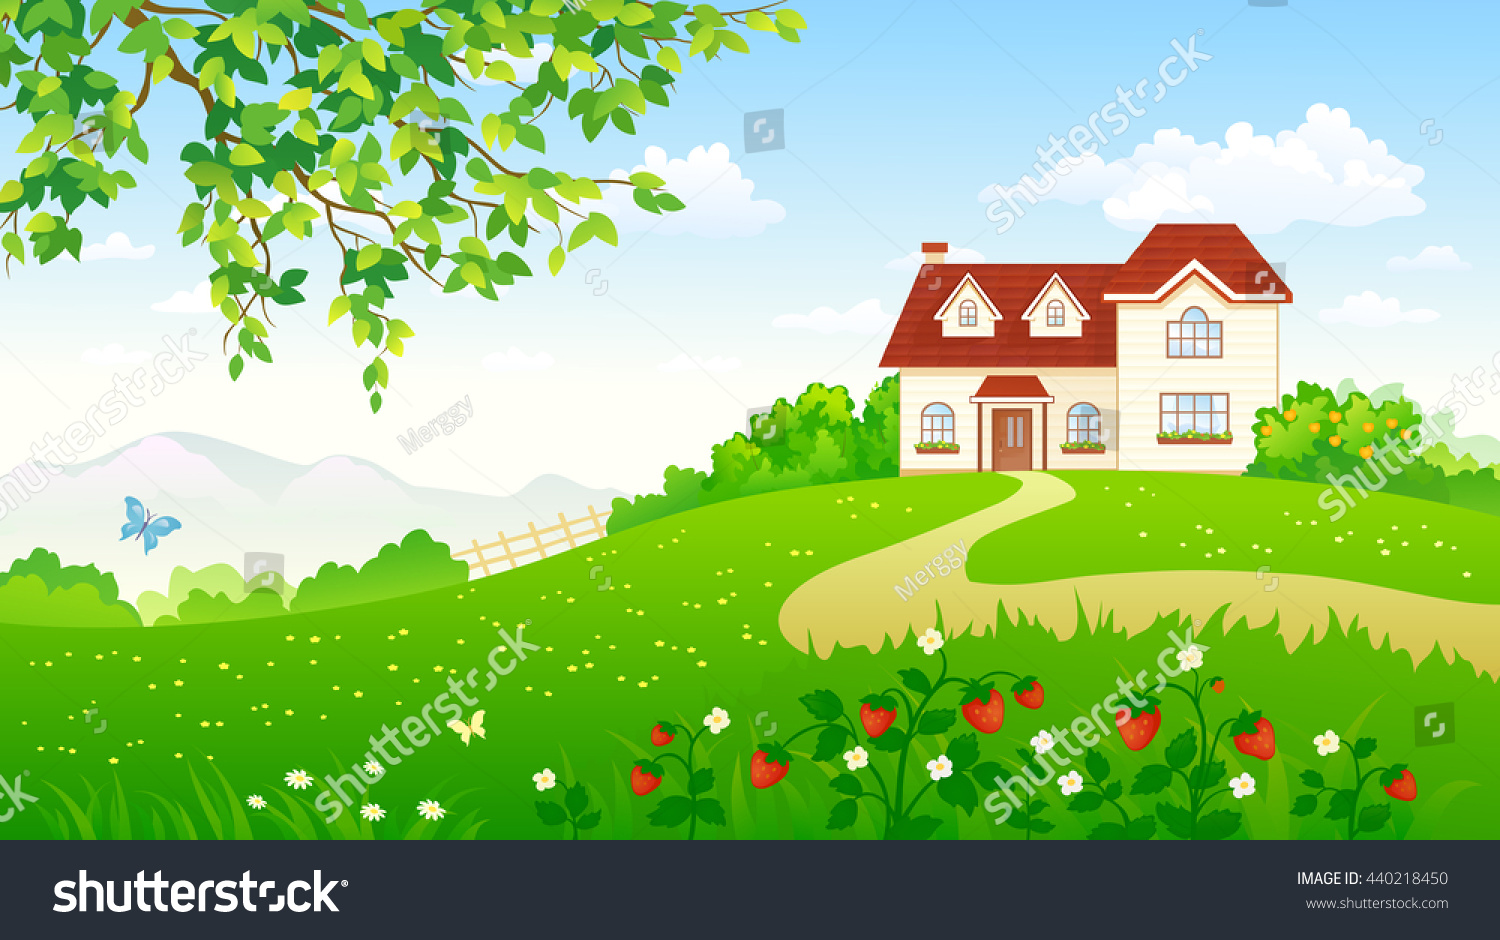 Beautiful garden cartoon - Vector Cartoon Illustration Of A Beautiful Summer Garden With A Strawberry Meadow And A House